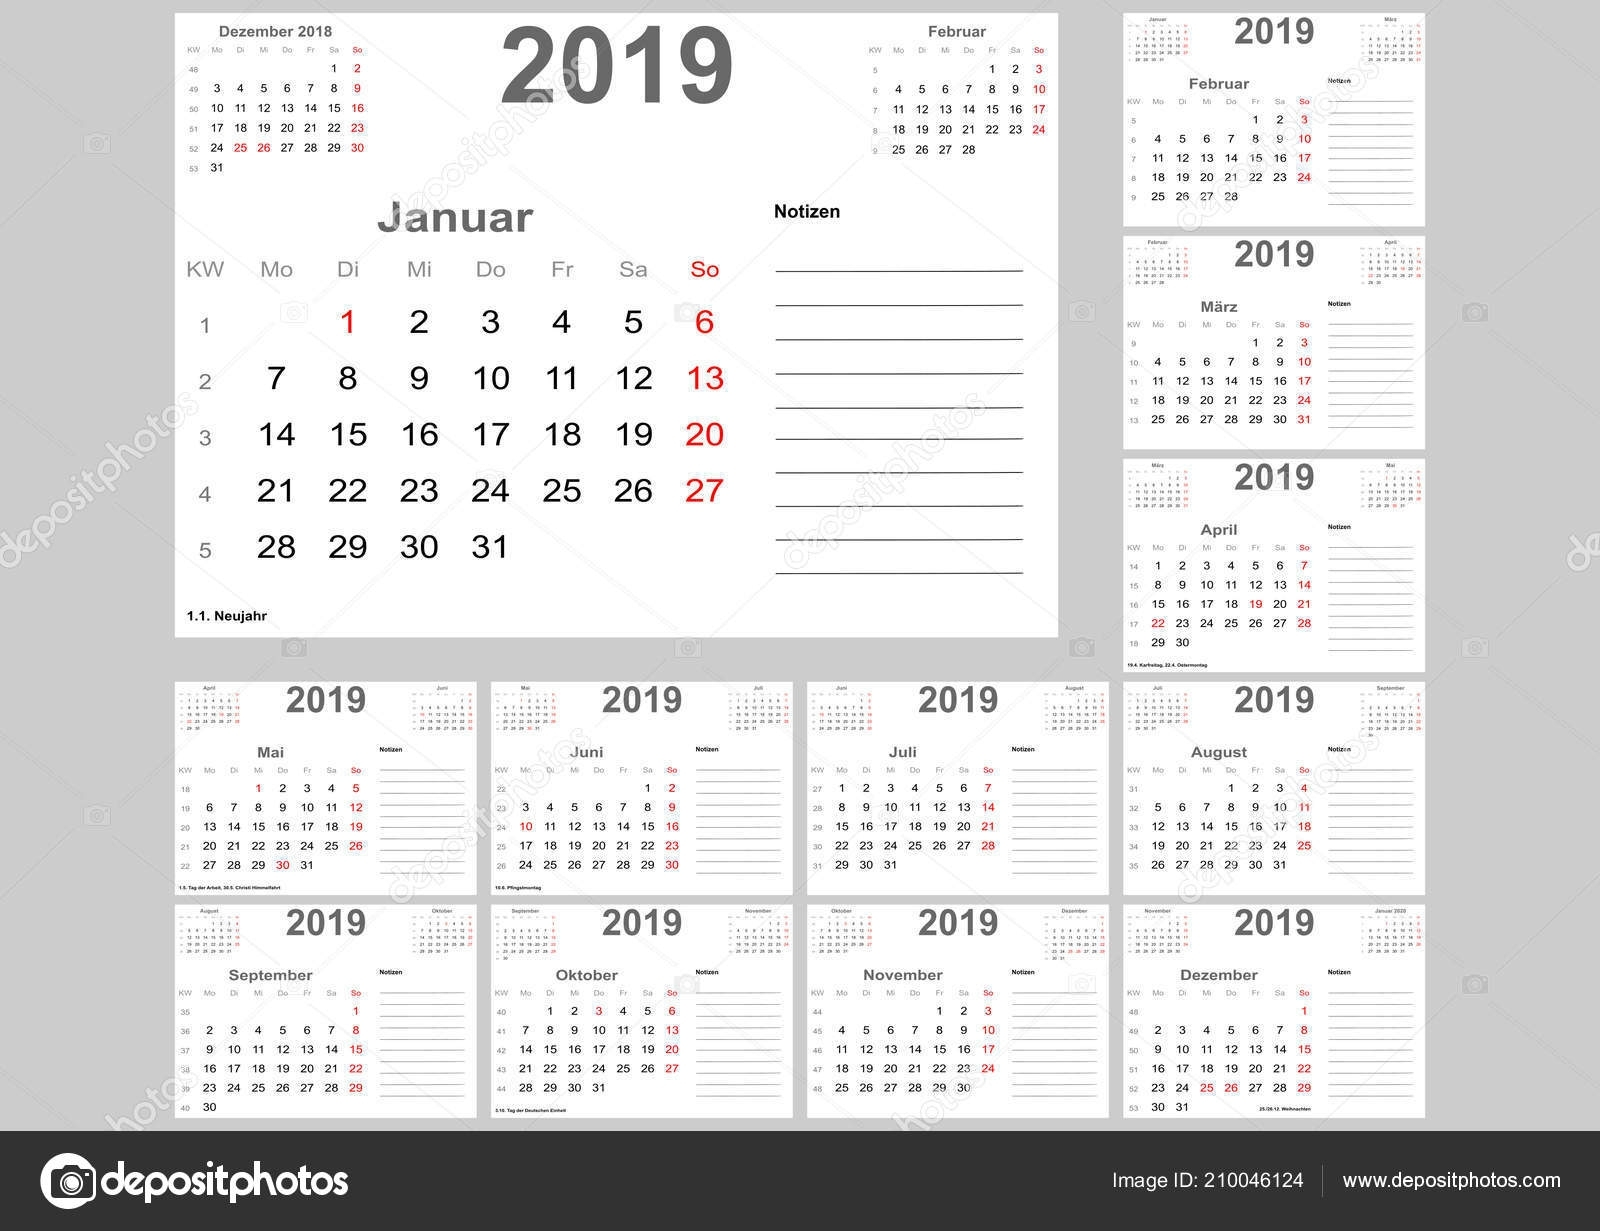 Calendar 2019 Germany Holidays Room Notes Previous Month Set within 12 Month Calendar With Room For Notes